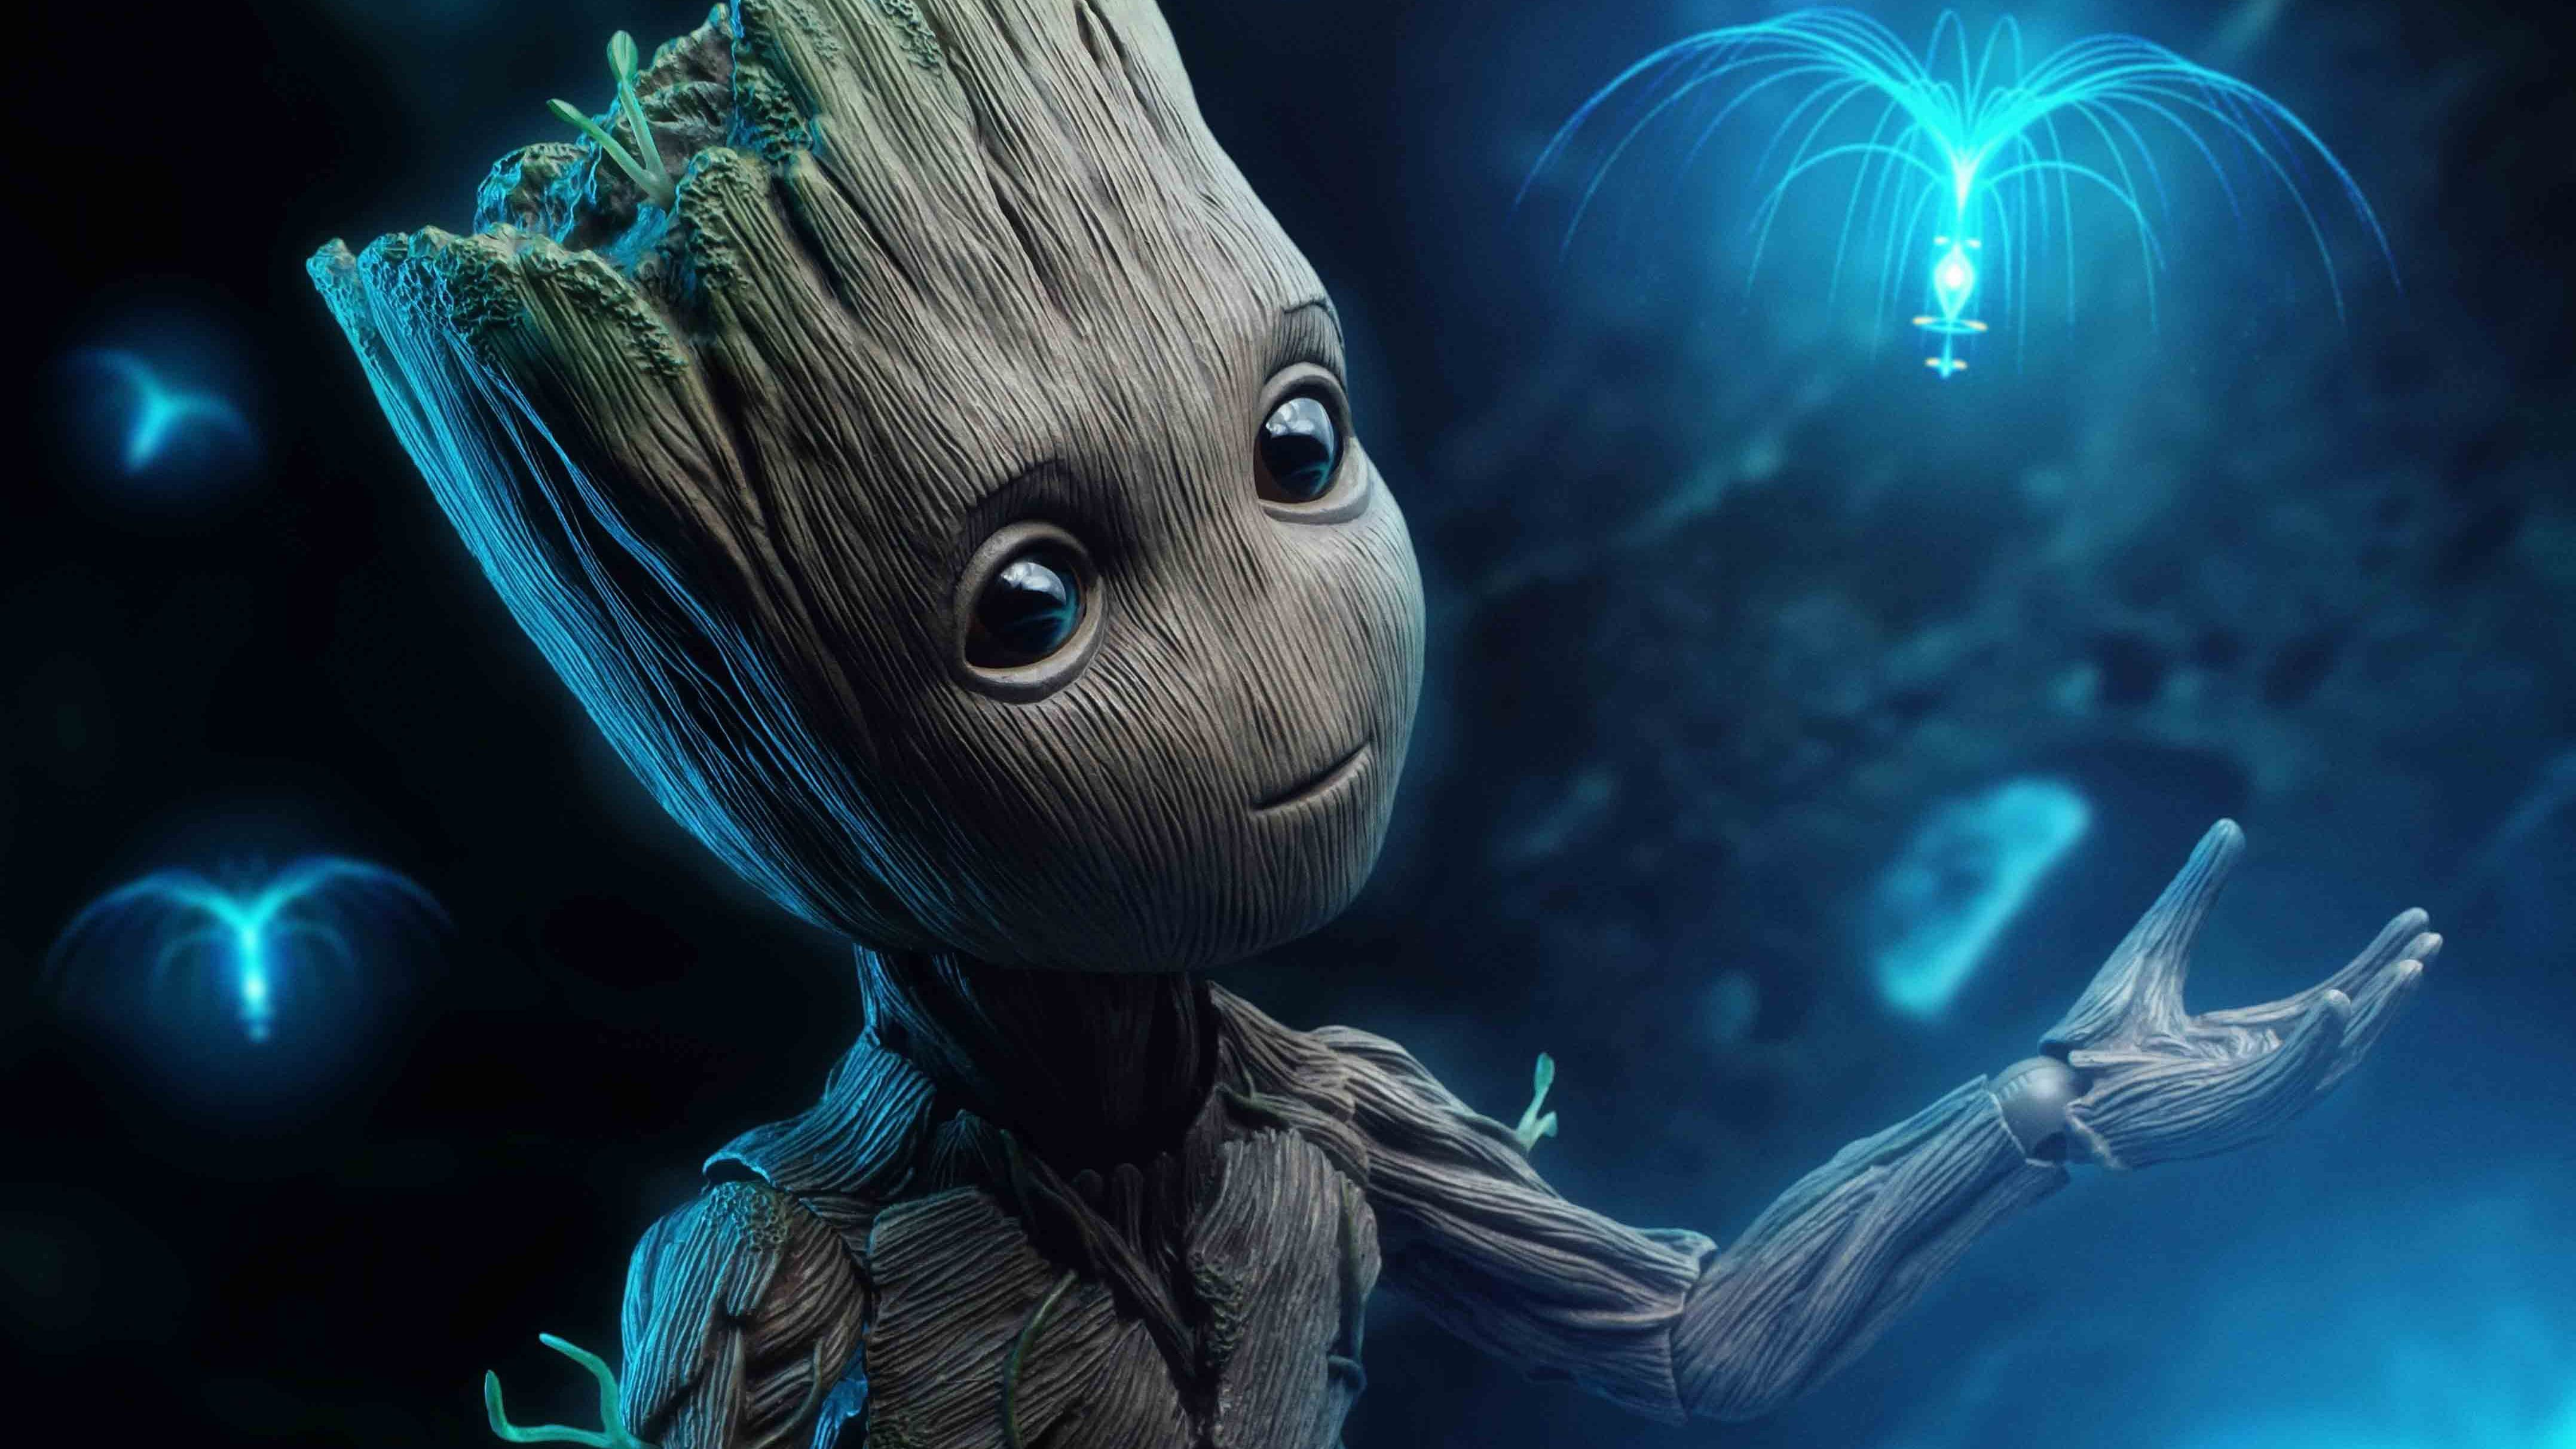 Awesome anime wallpaper for desktop, table, and mobile. baby groot #4k #hd #superheroes #4K #wallpaper # ...